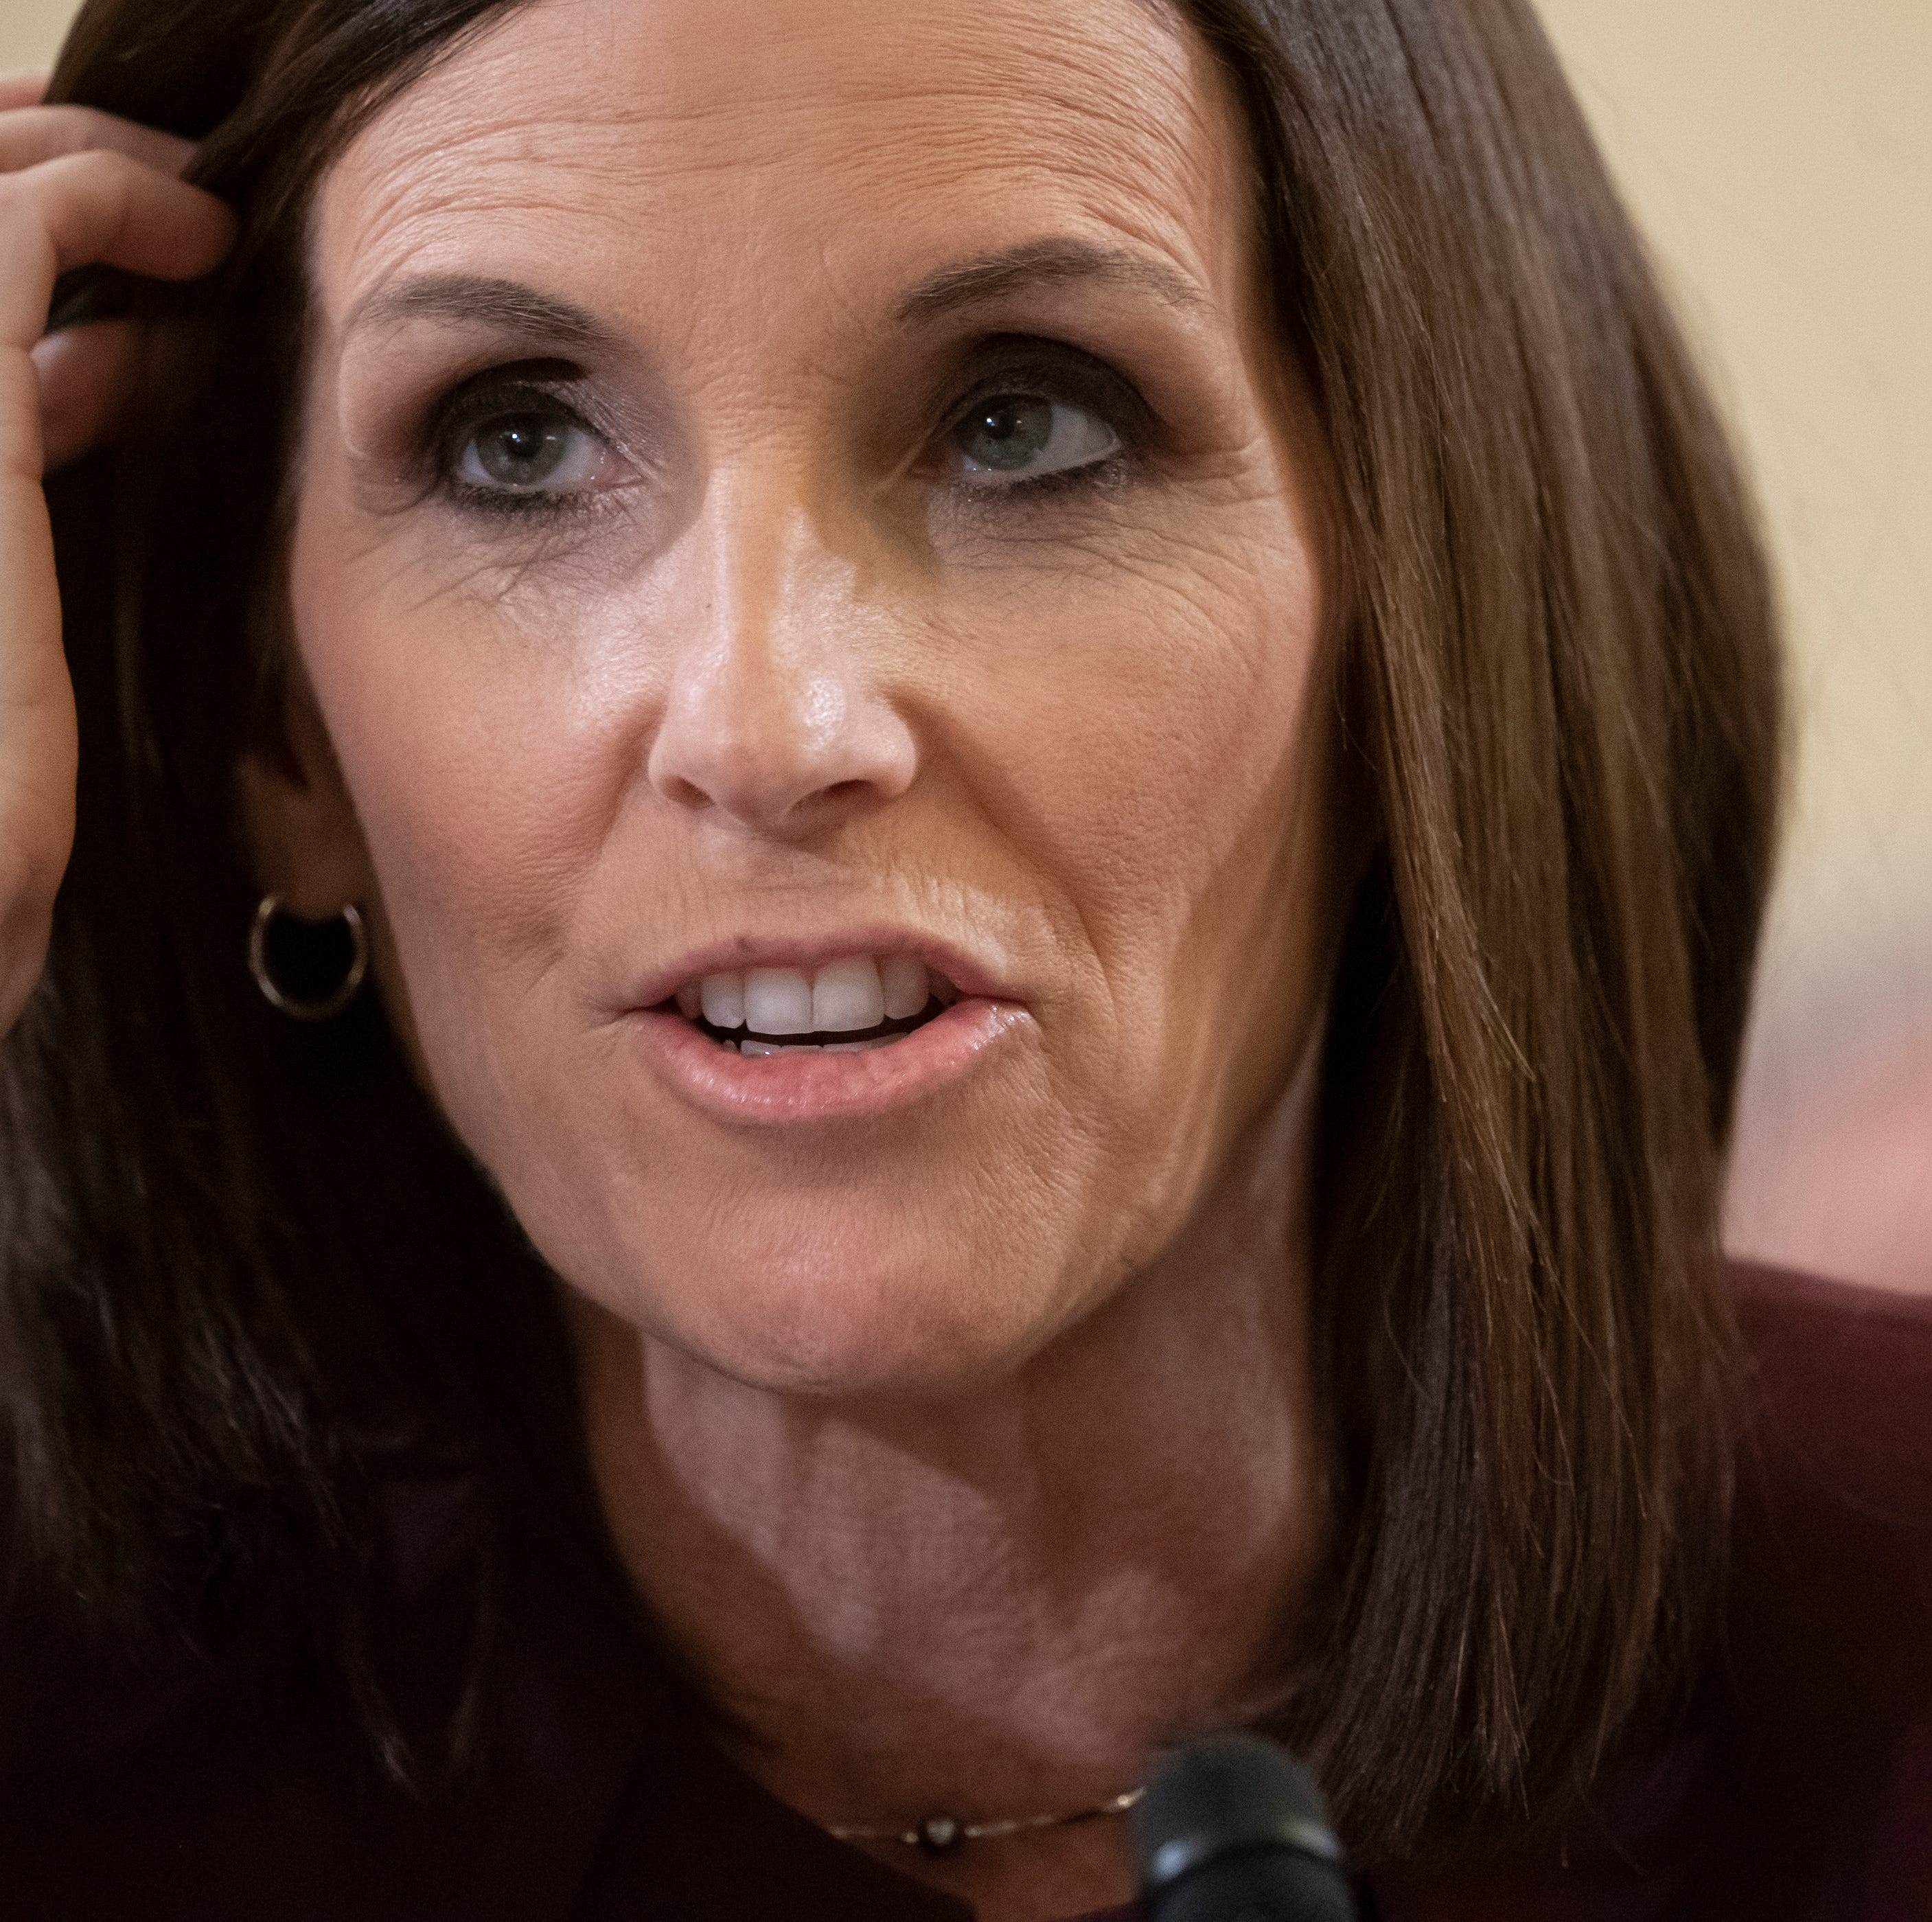 'I just would ask people respect my path,' McSally asks as she keeps pressure on military leaders